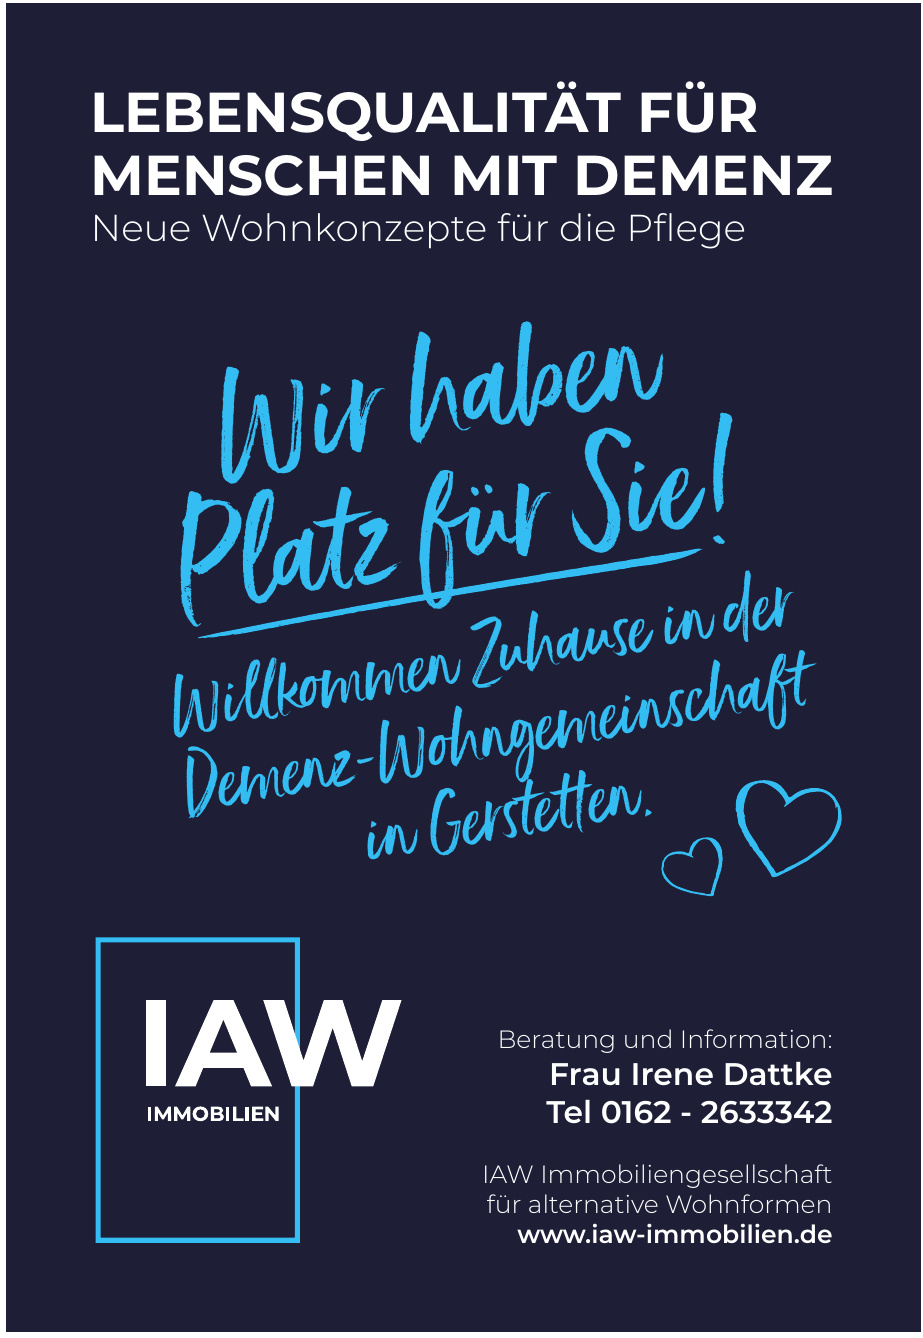 Iaw Immobilien